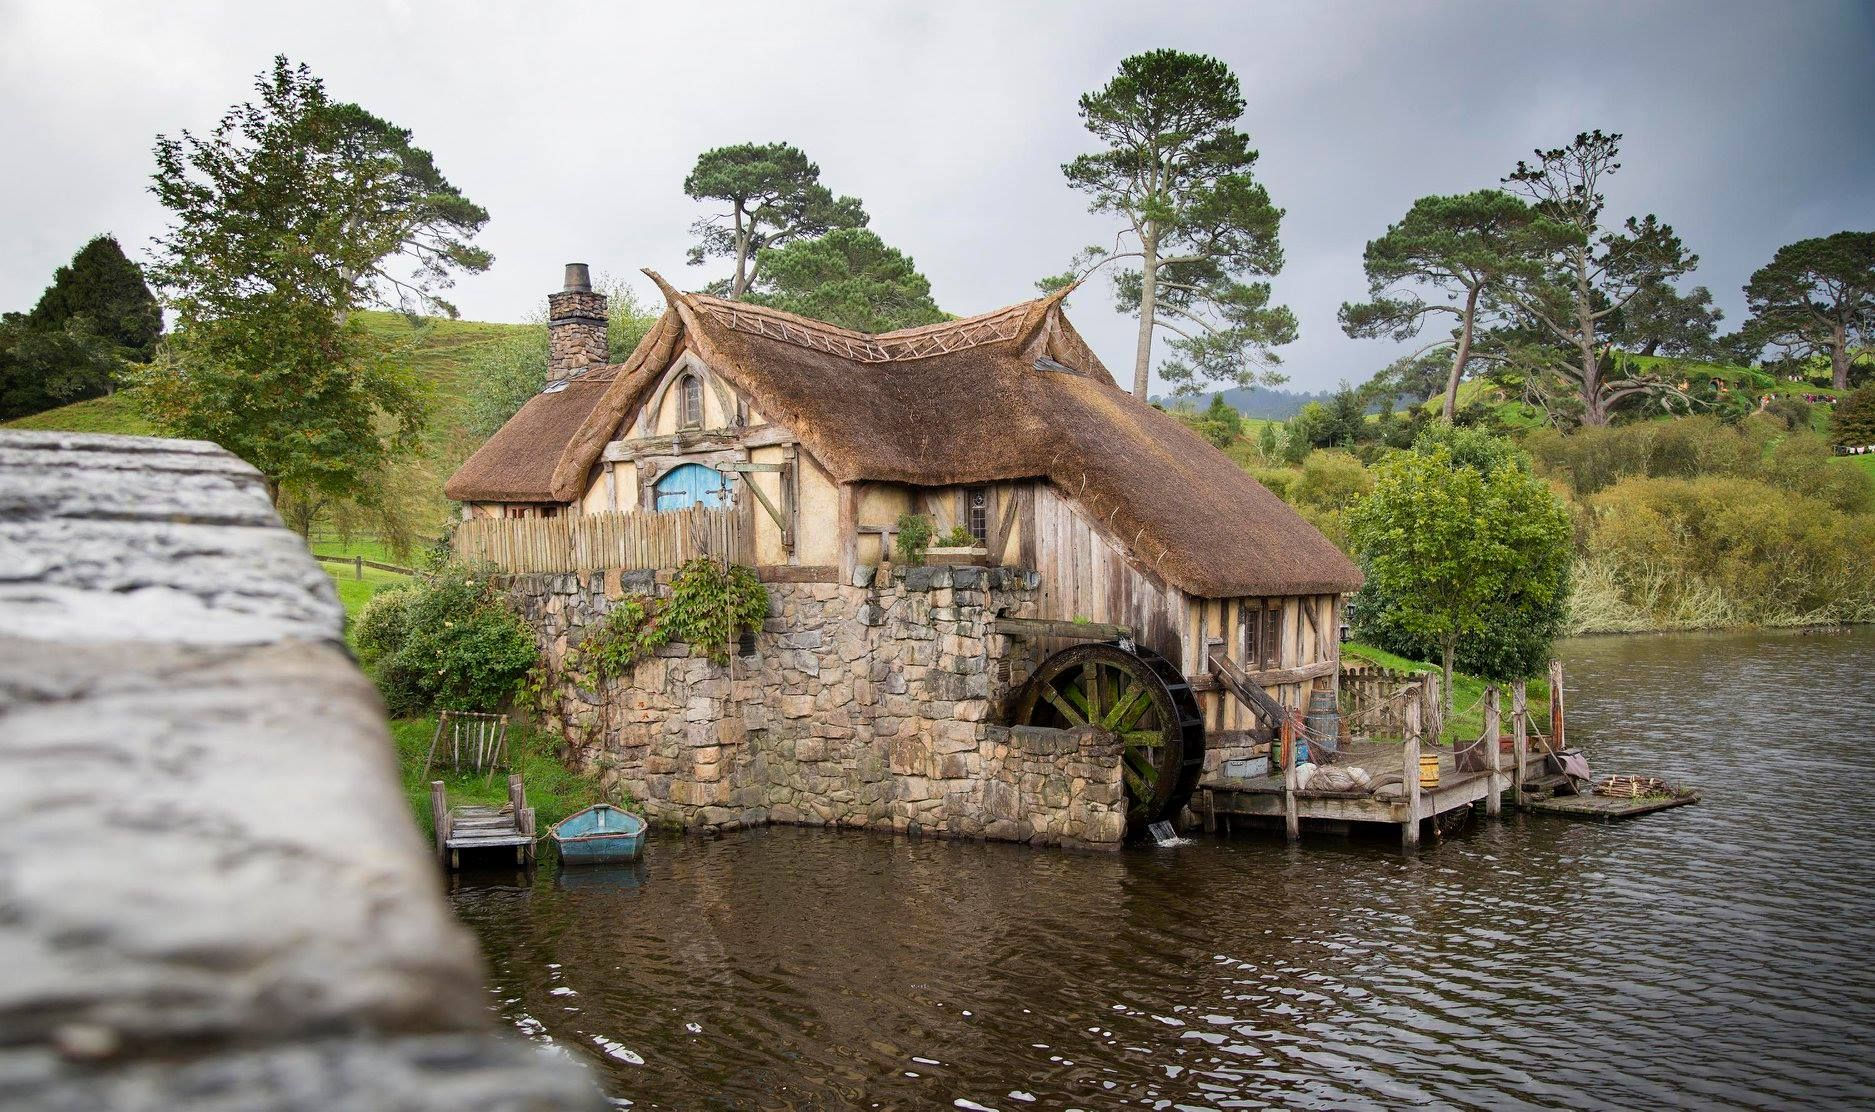 6 Day Lord of the Rings Tour (Single Rate) Lord of the Rings Scenes, New Zealand